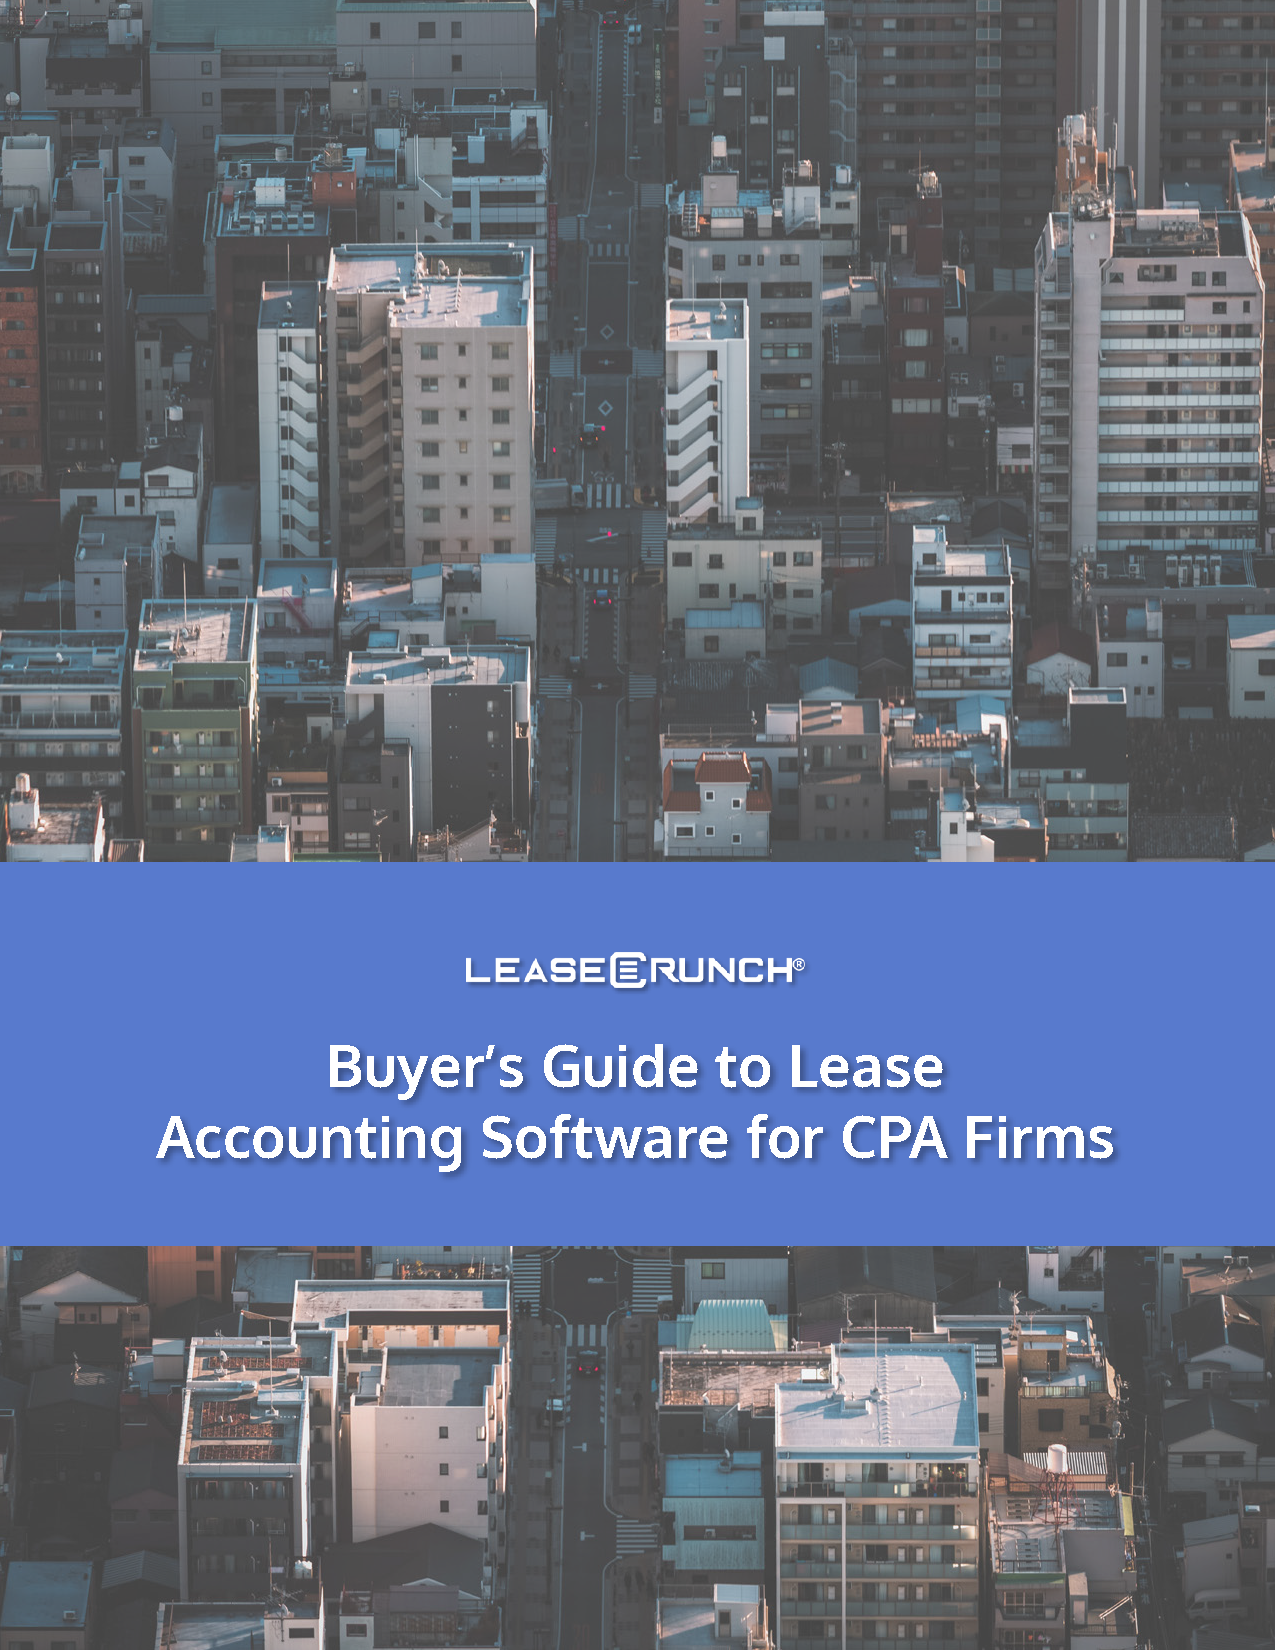 Buyer's Guide to Lease Accounting Software for CPA Firms